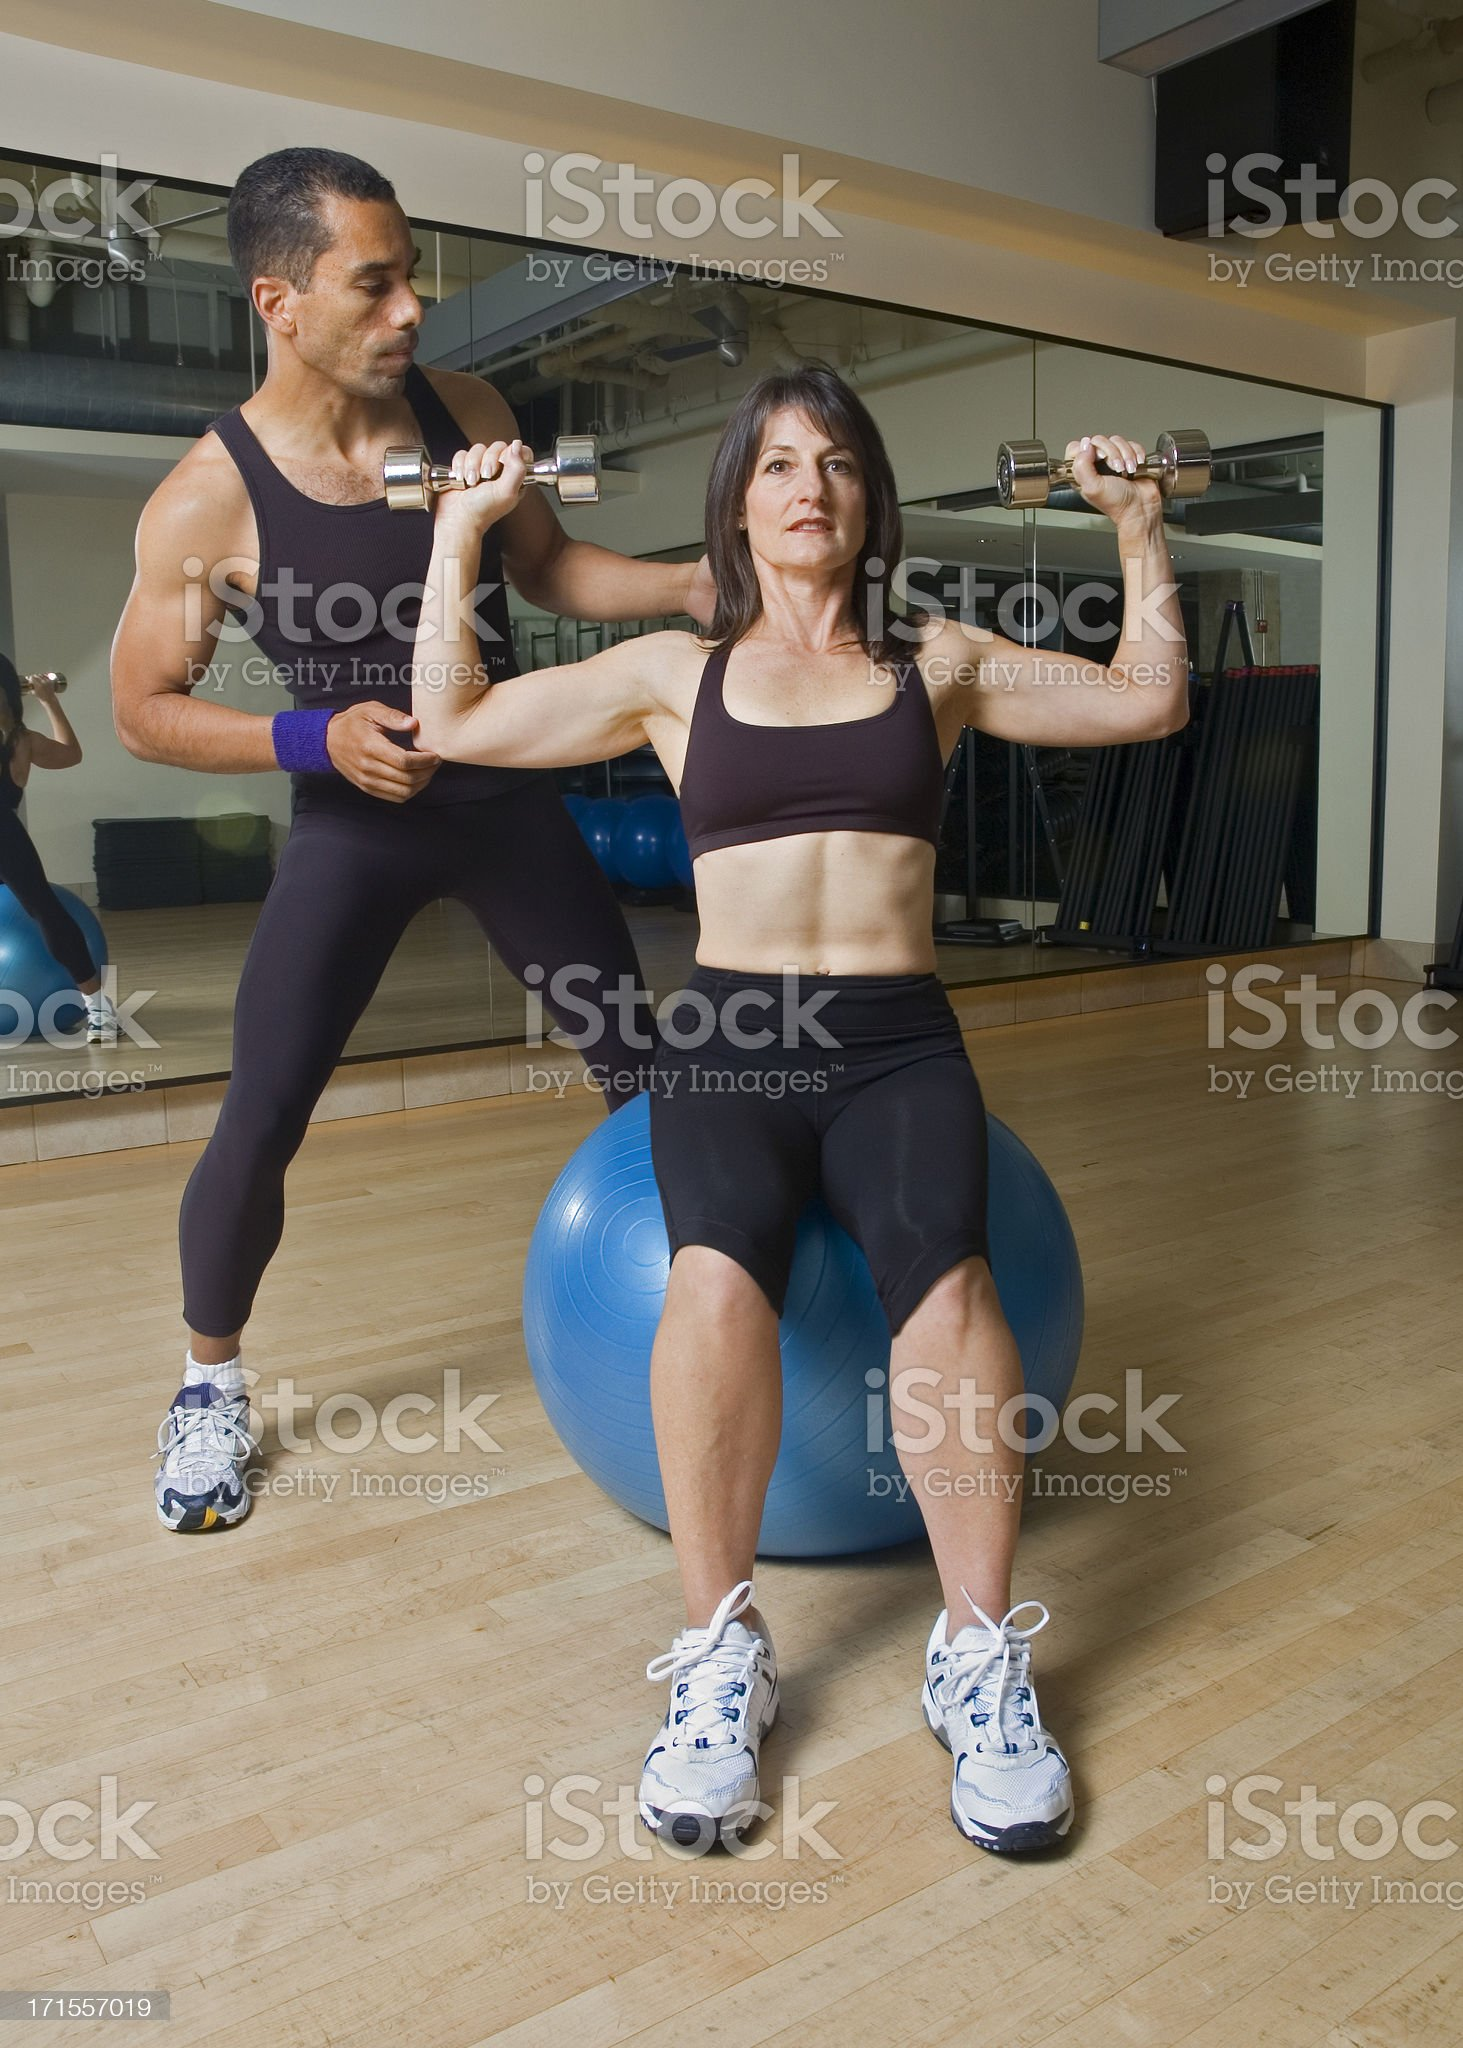 Personal Trainer Workout with Exercise Ball royalty-free stock photo